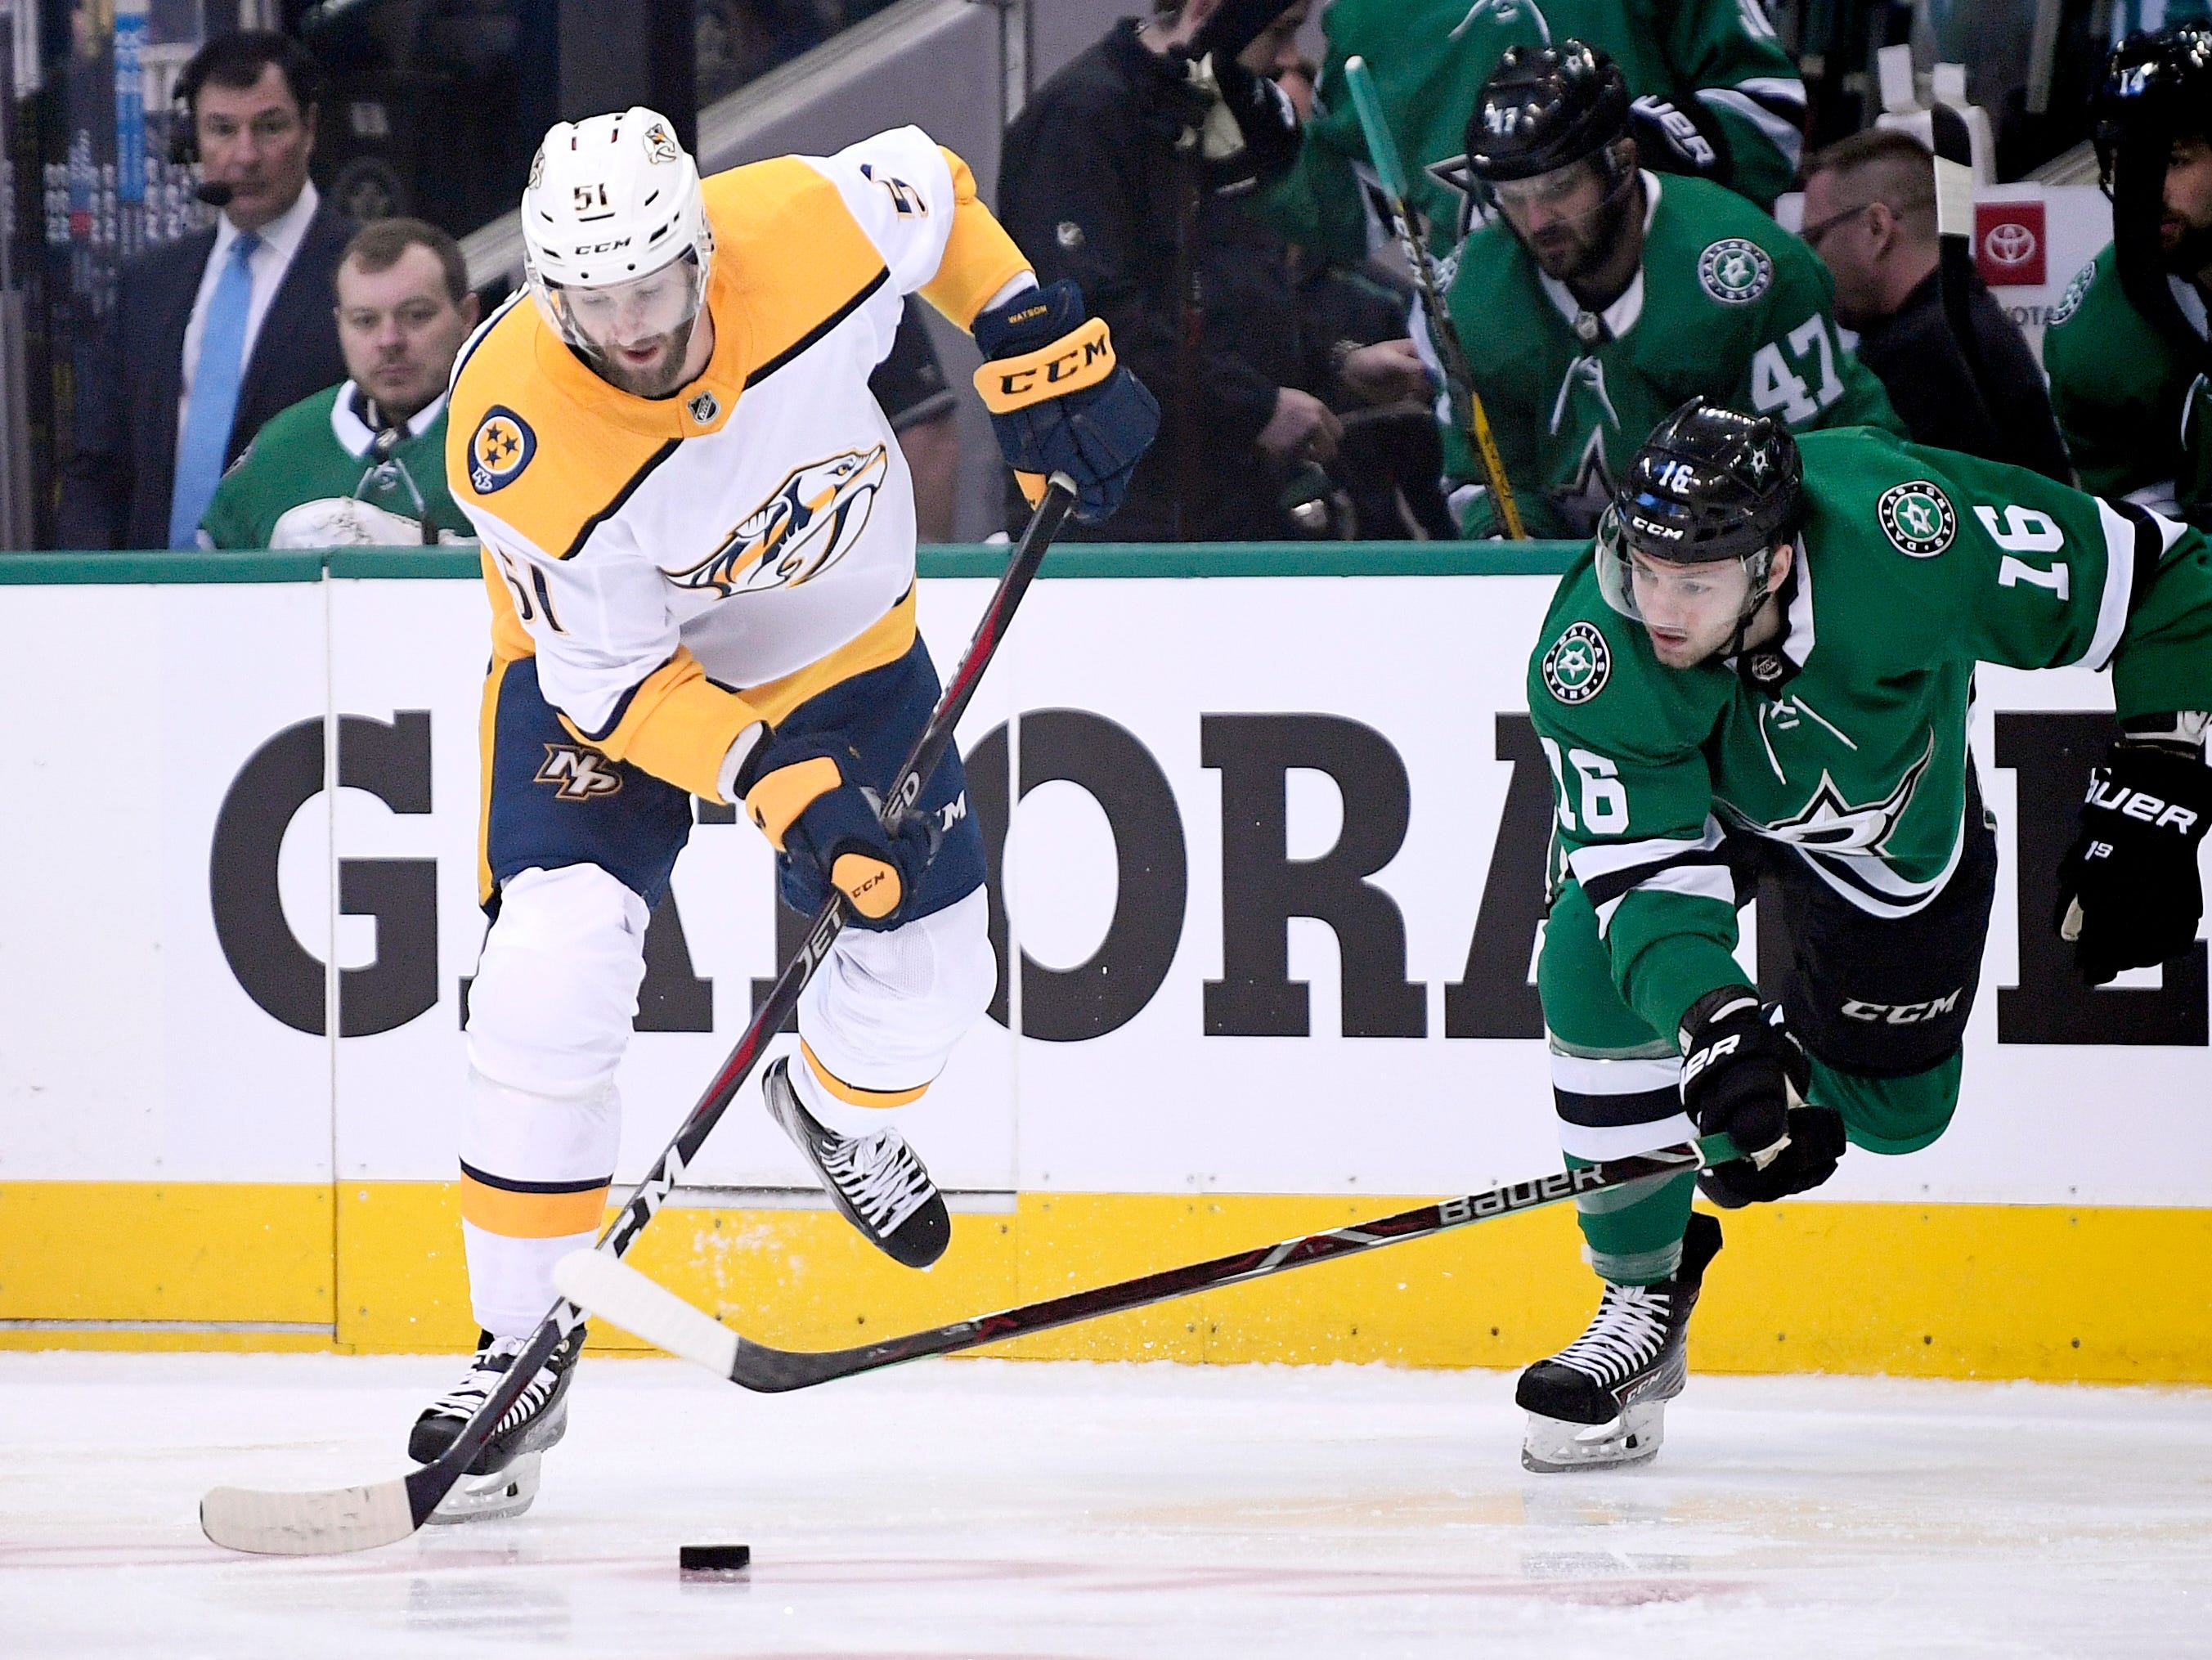 Nashville Predators left wing Austin Watson (51) moves the puck defended by Dallas Stars center Jason Dickinson (16) during the first period of the divisional semifinal game at the American Airlines Center in Dallas, Texas., Monday, April 15, 2019.